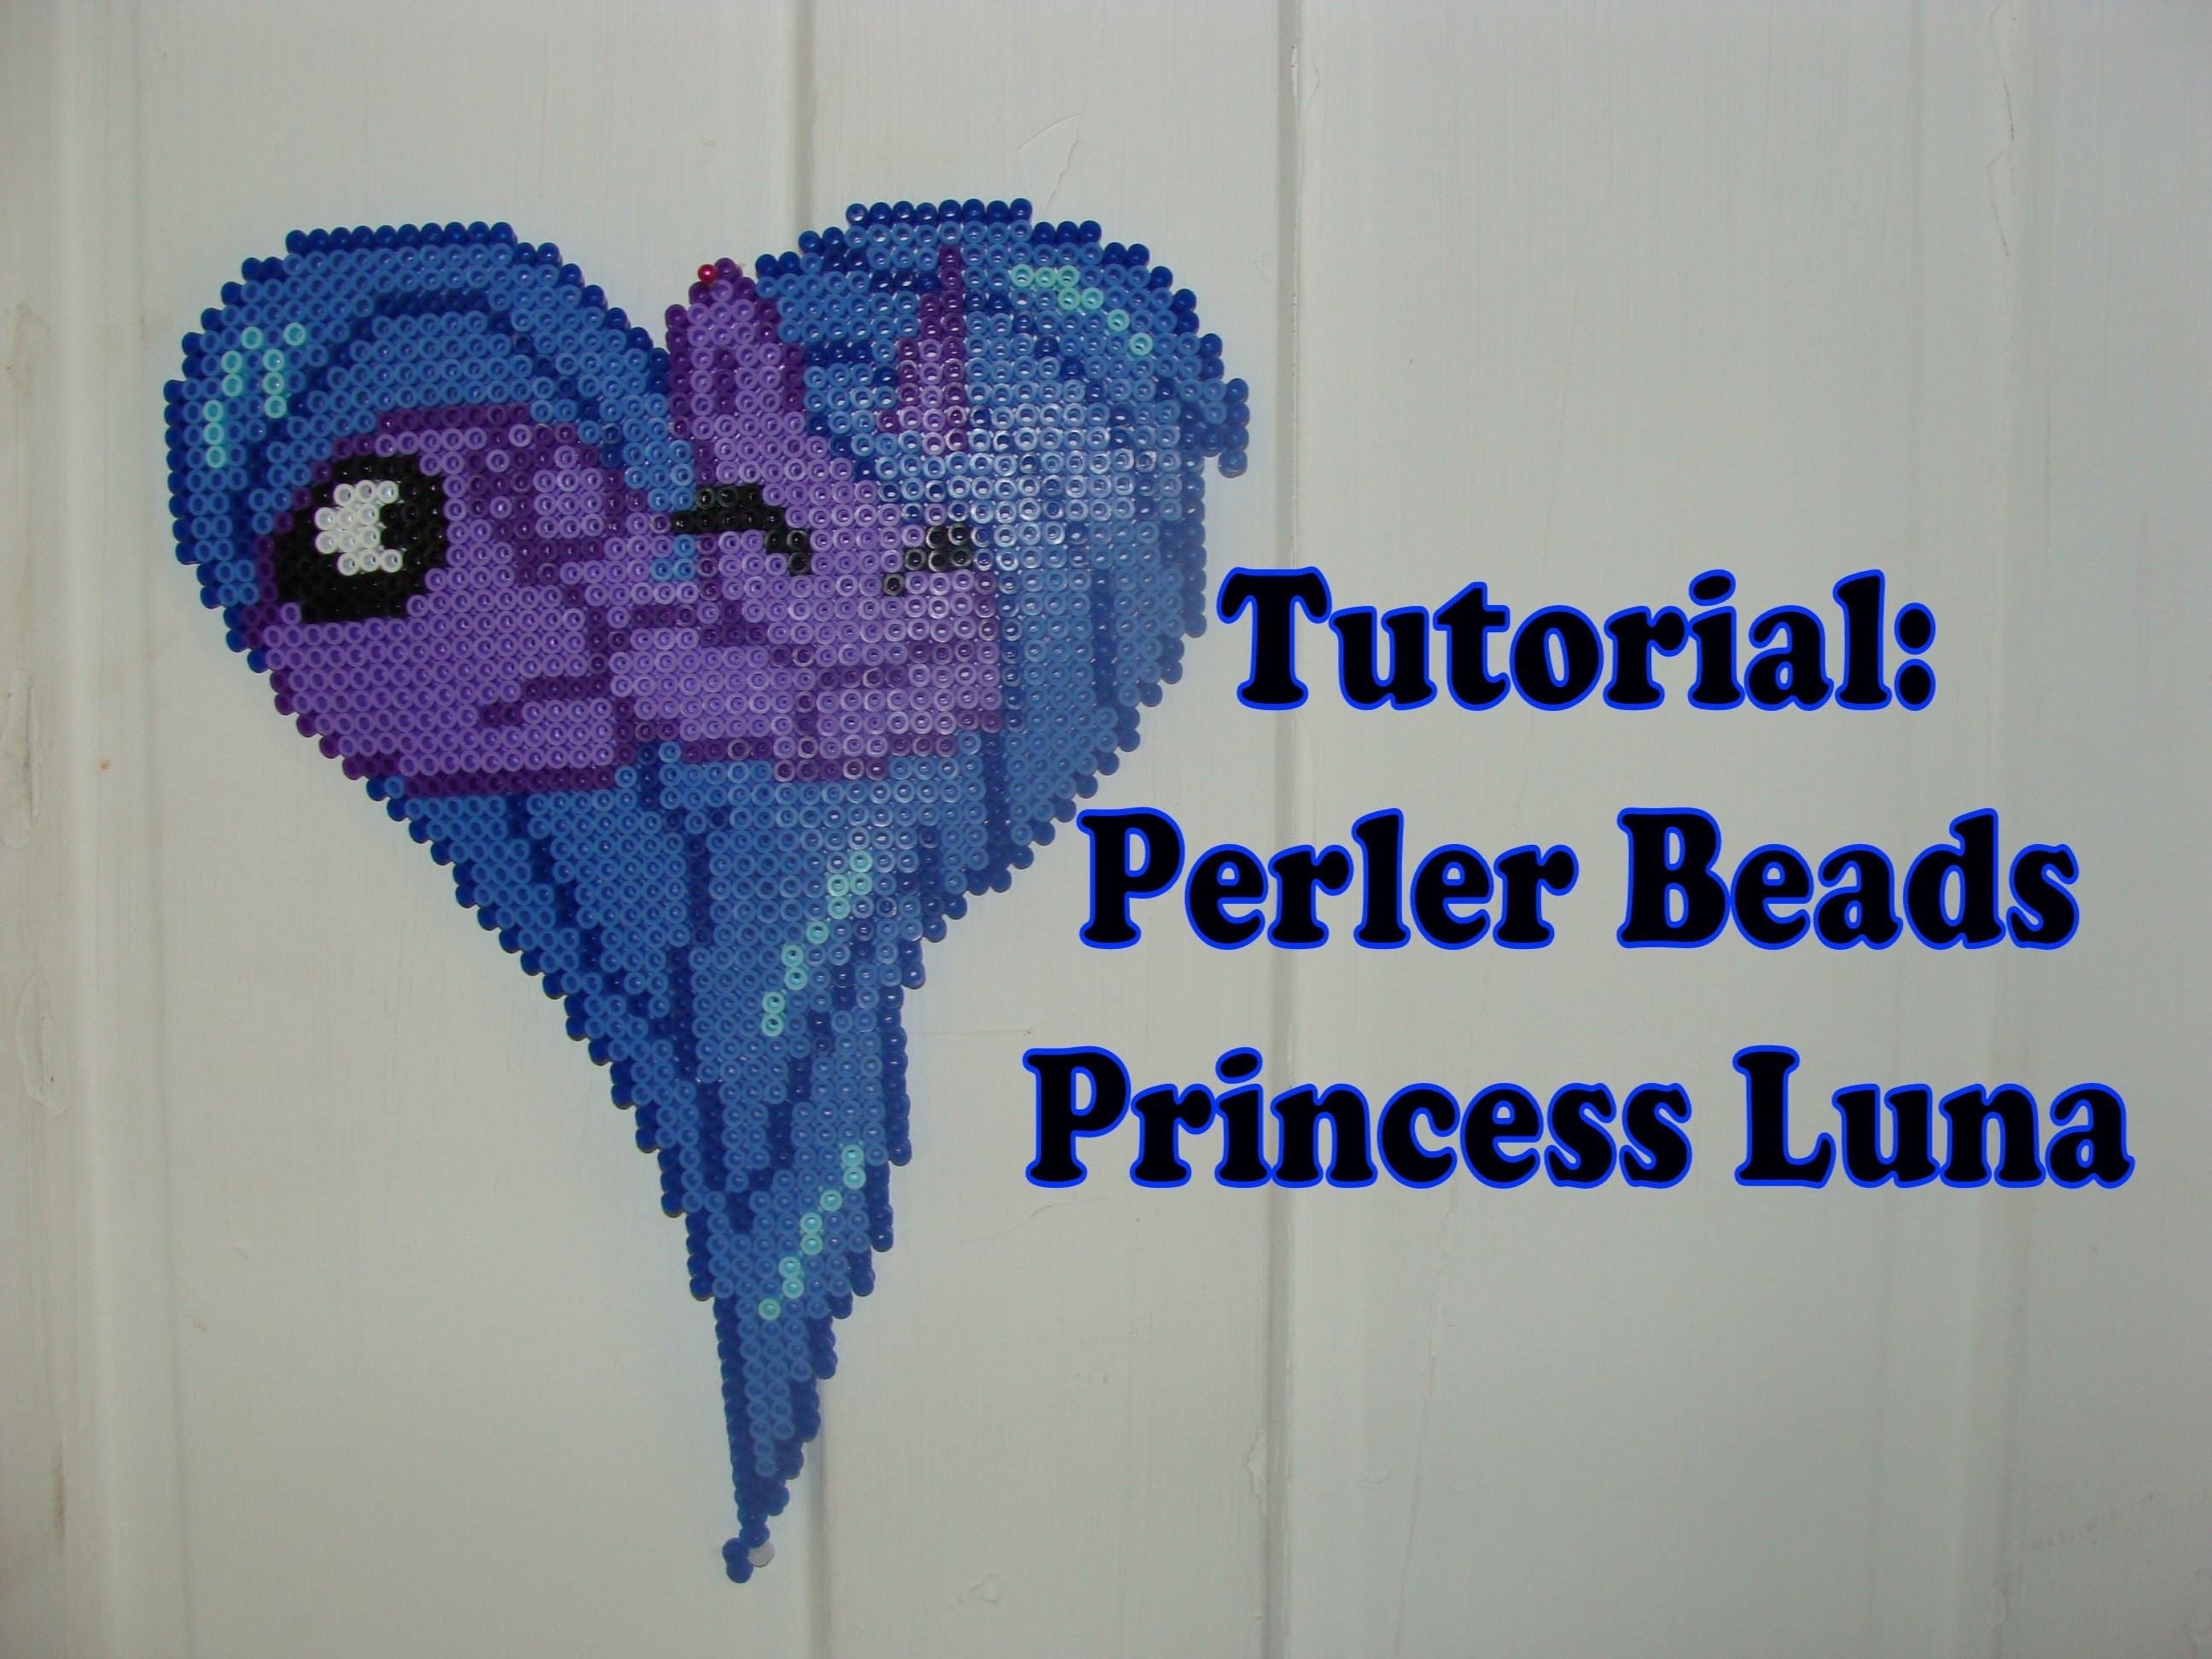 TUTORIAL: Princess Luna FiM - Perler Beads DIY